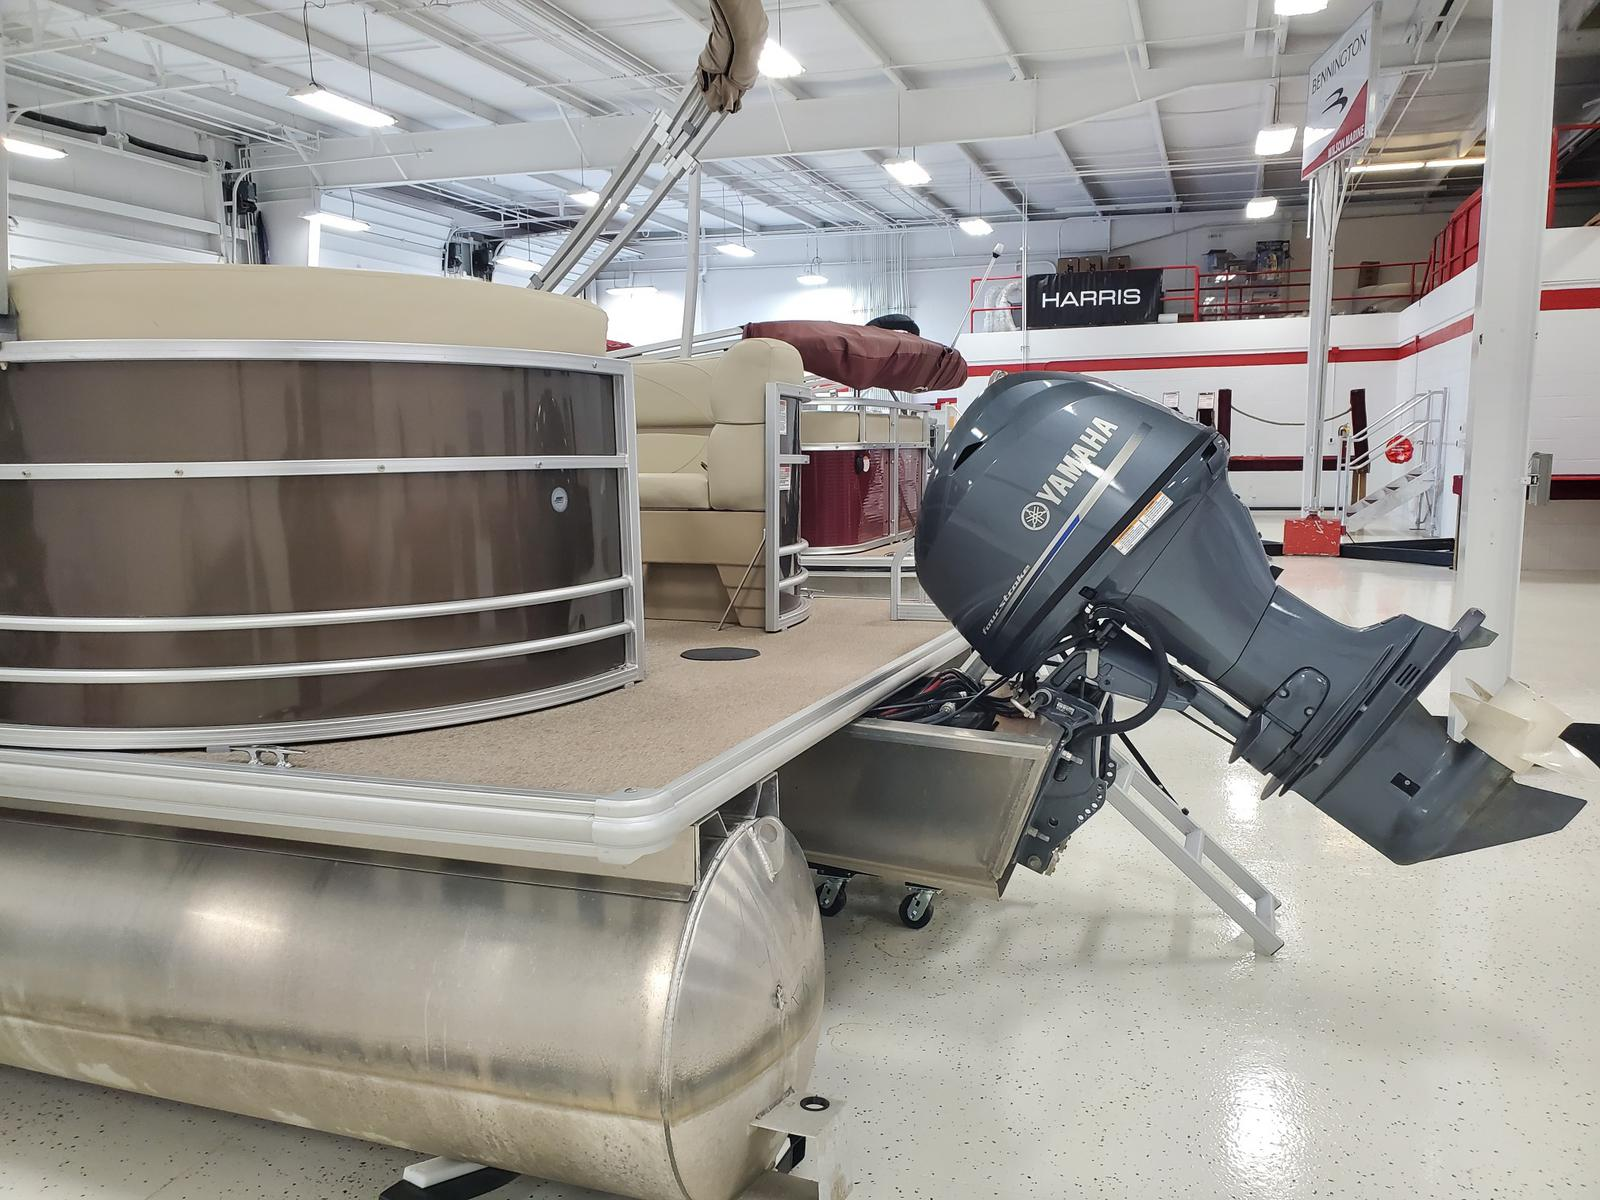 2018 SunChaser boat for sale, model of the boat is Geneva Cruise 20 LR DH & Image # 2 of 11